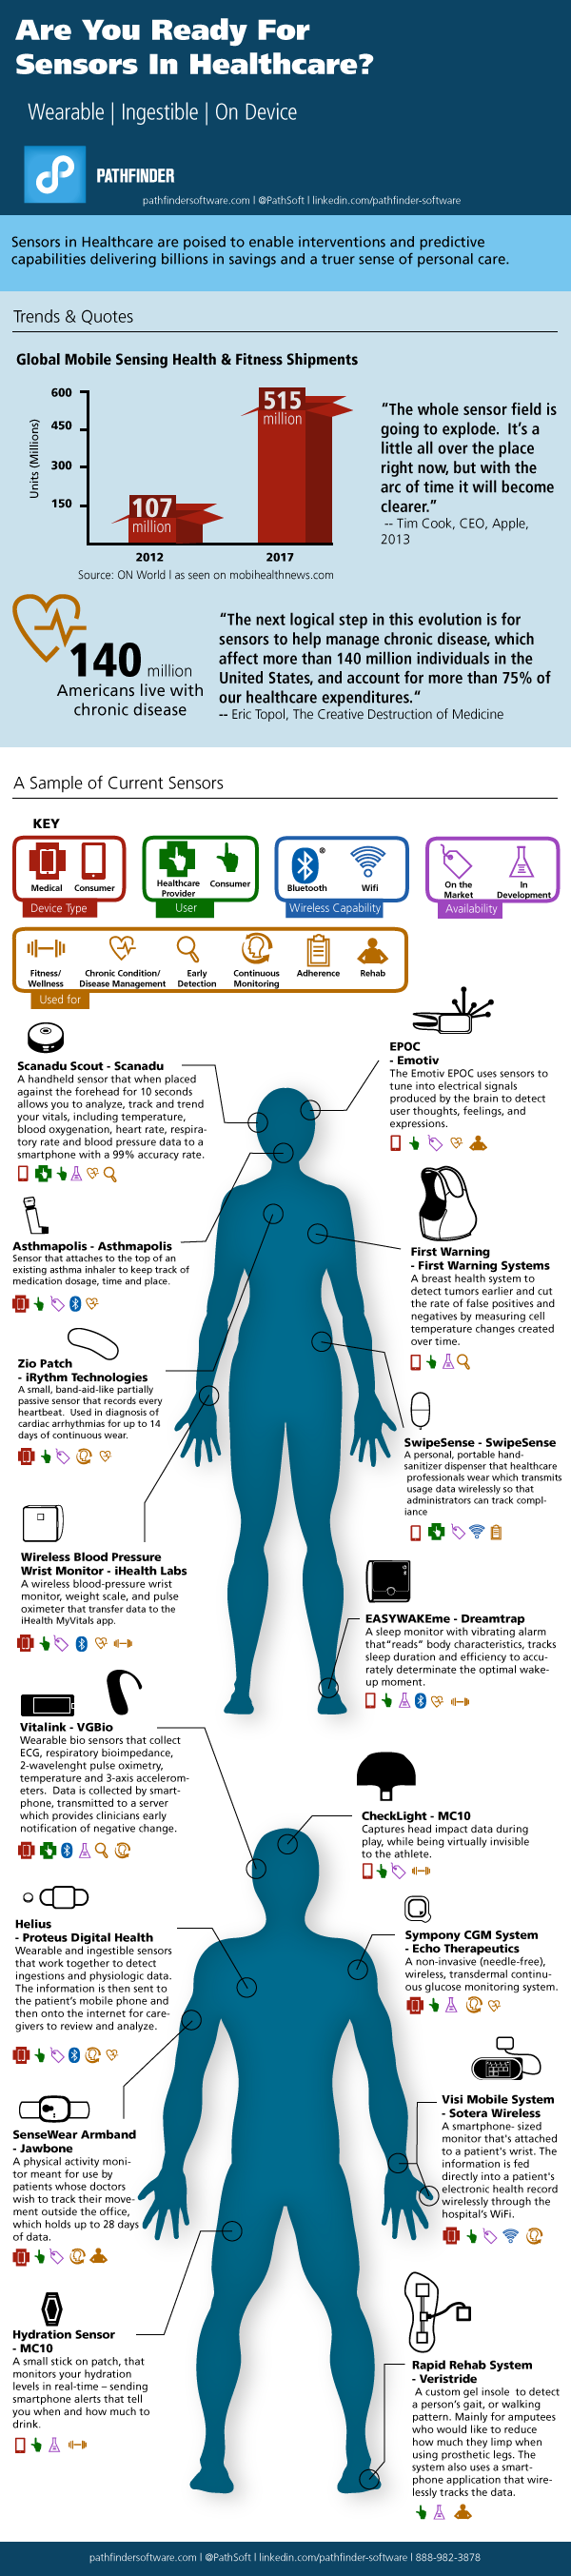 Wearables Devices